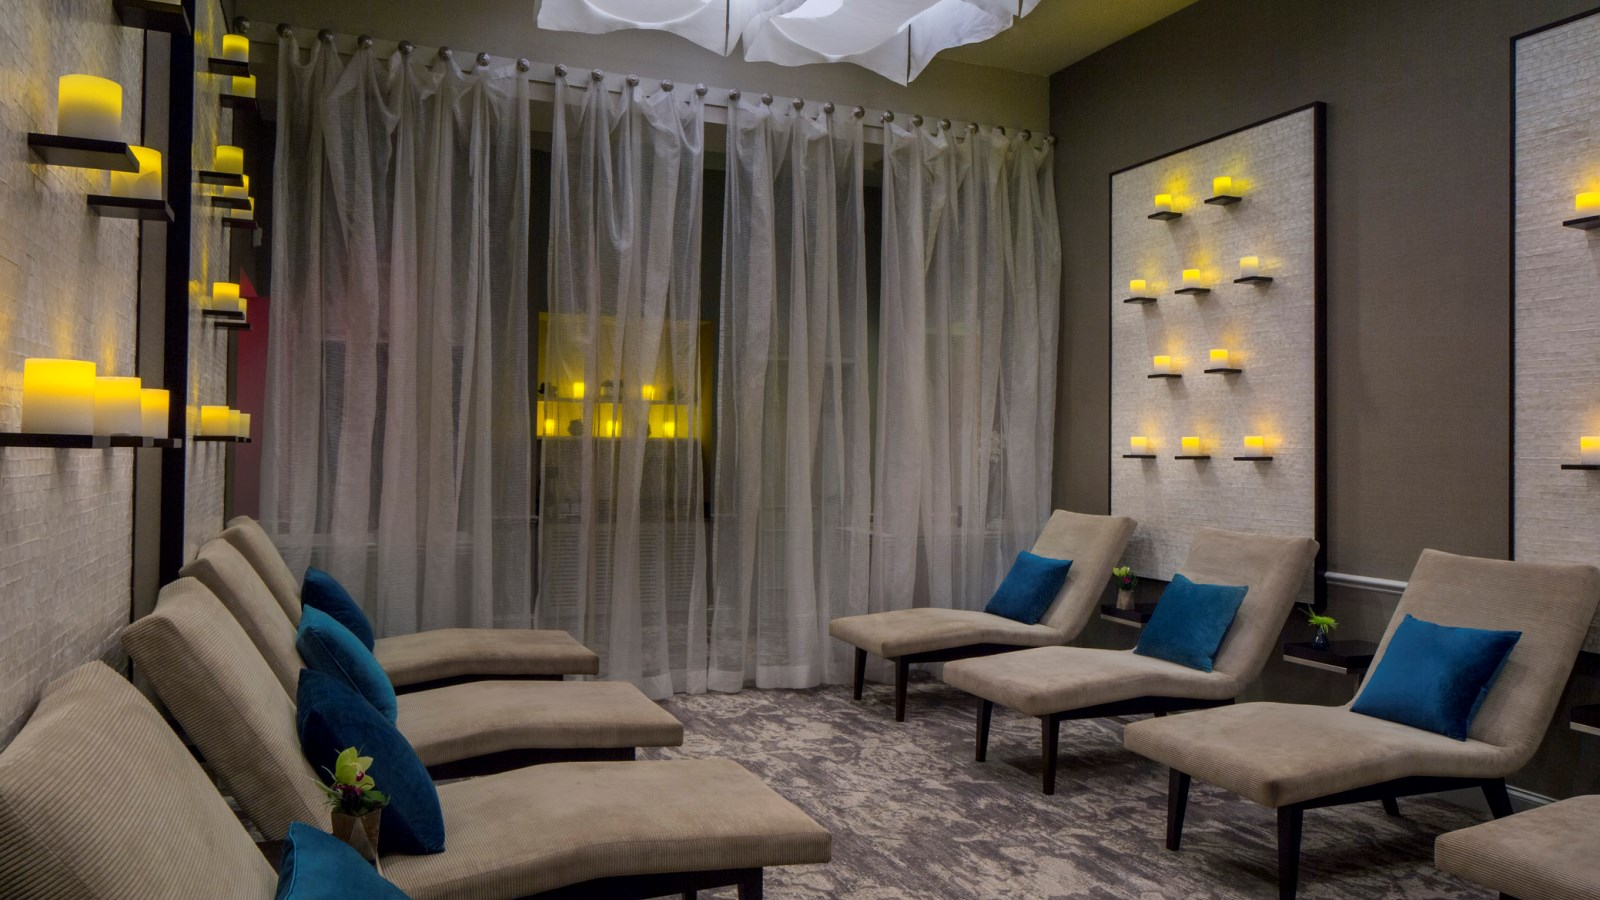 Things to Do in Savannah, Georgia - Heavenly Spa by Westin